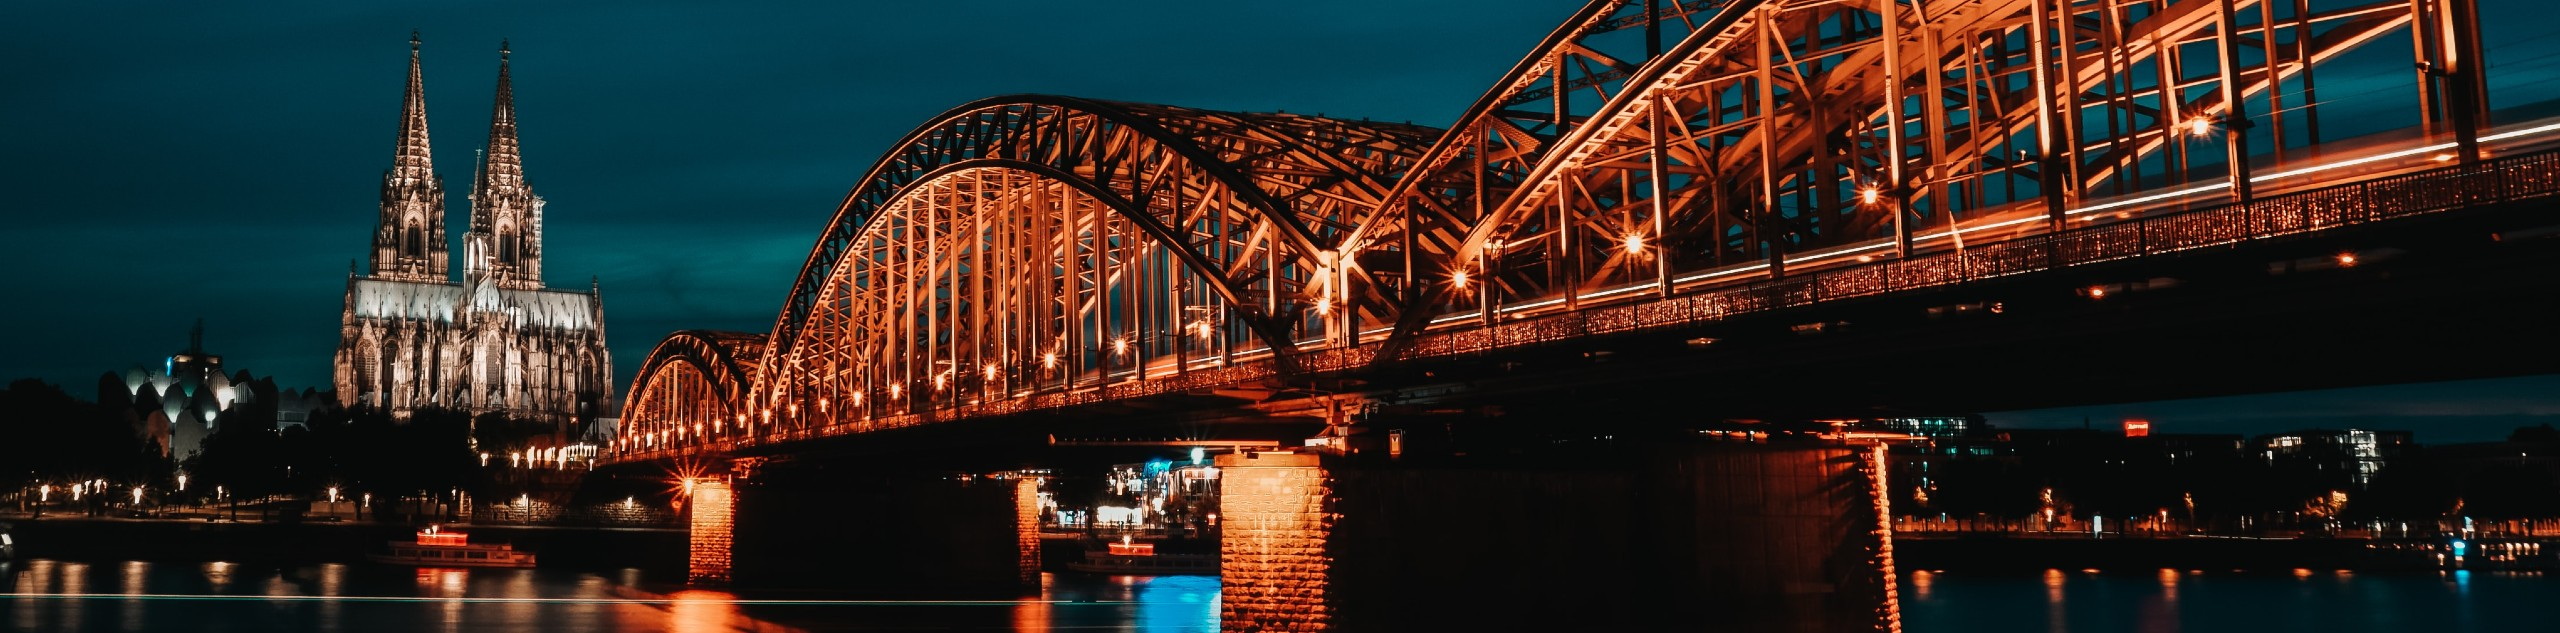 Night lights over the Rhone river and the gothic cathedral in North Rhine-Westphalia